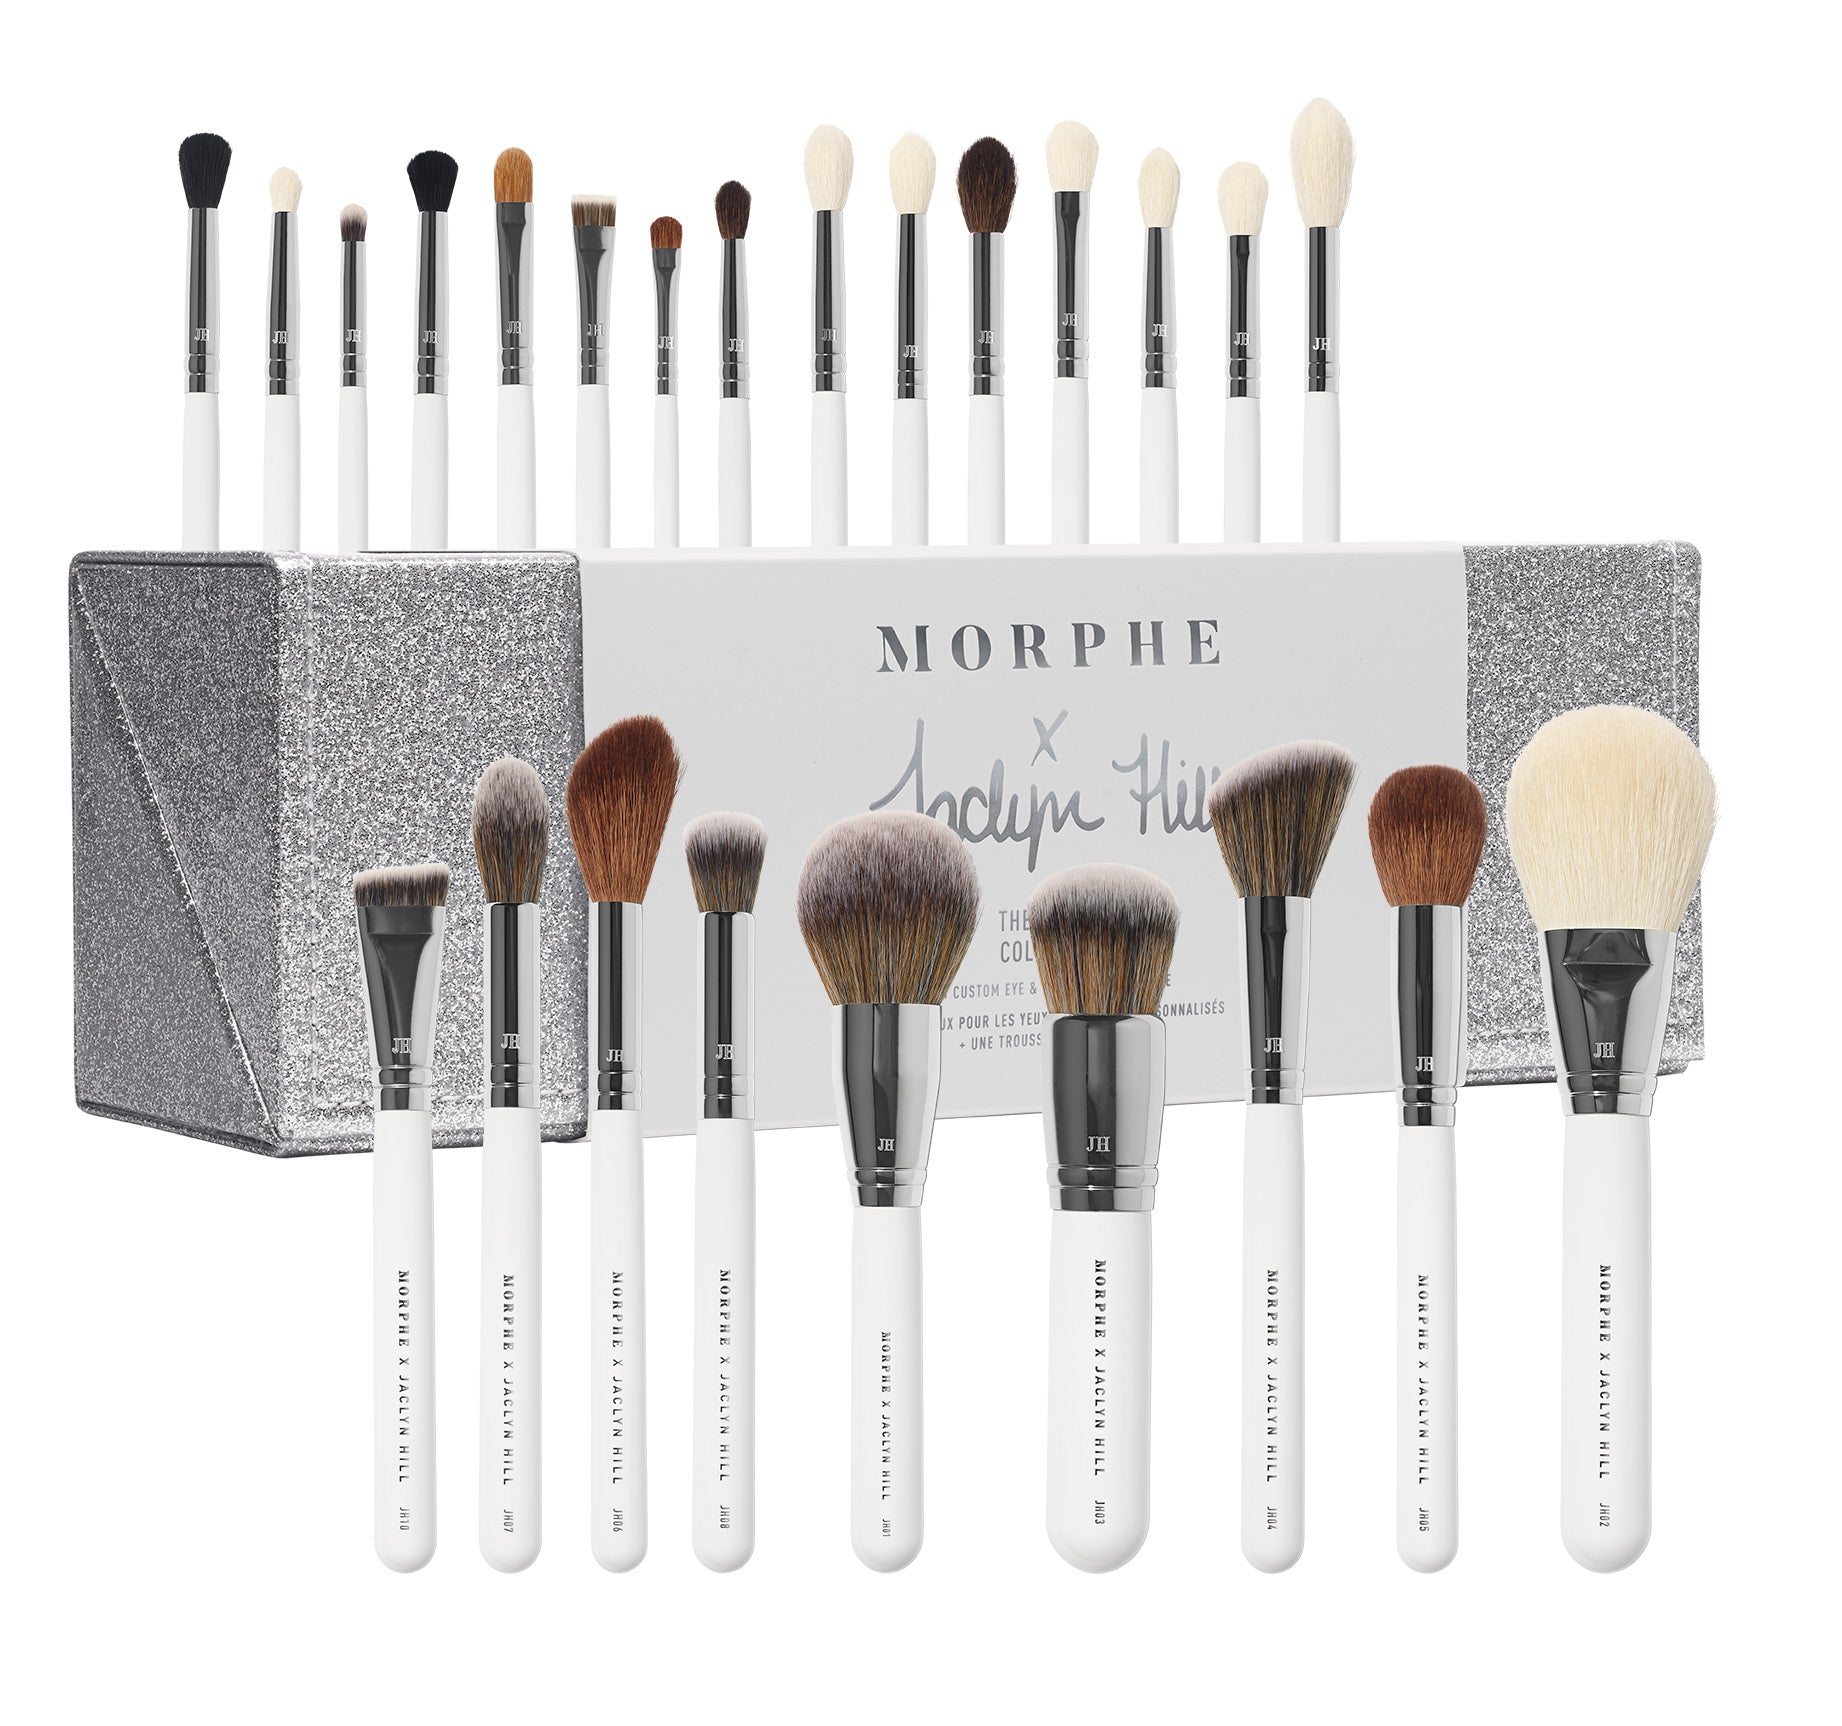 MORPHE X JACLYN HILL THE MASTER KOLLEKTION